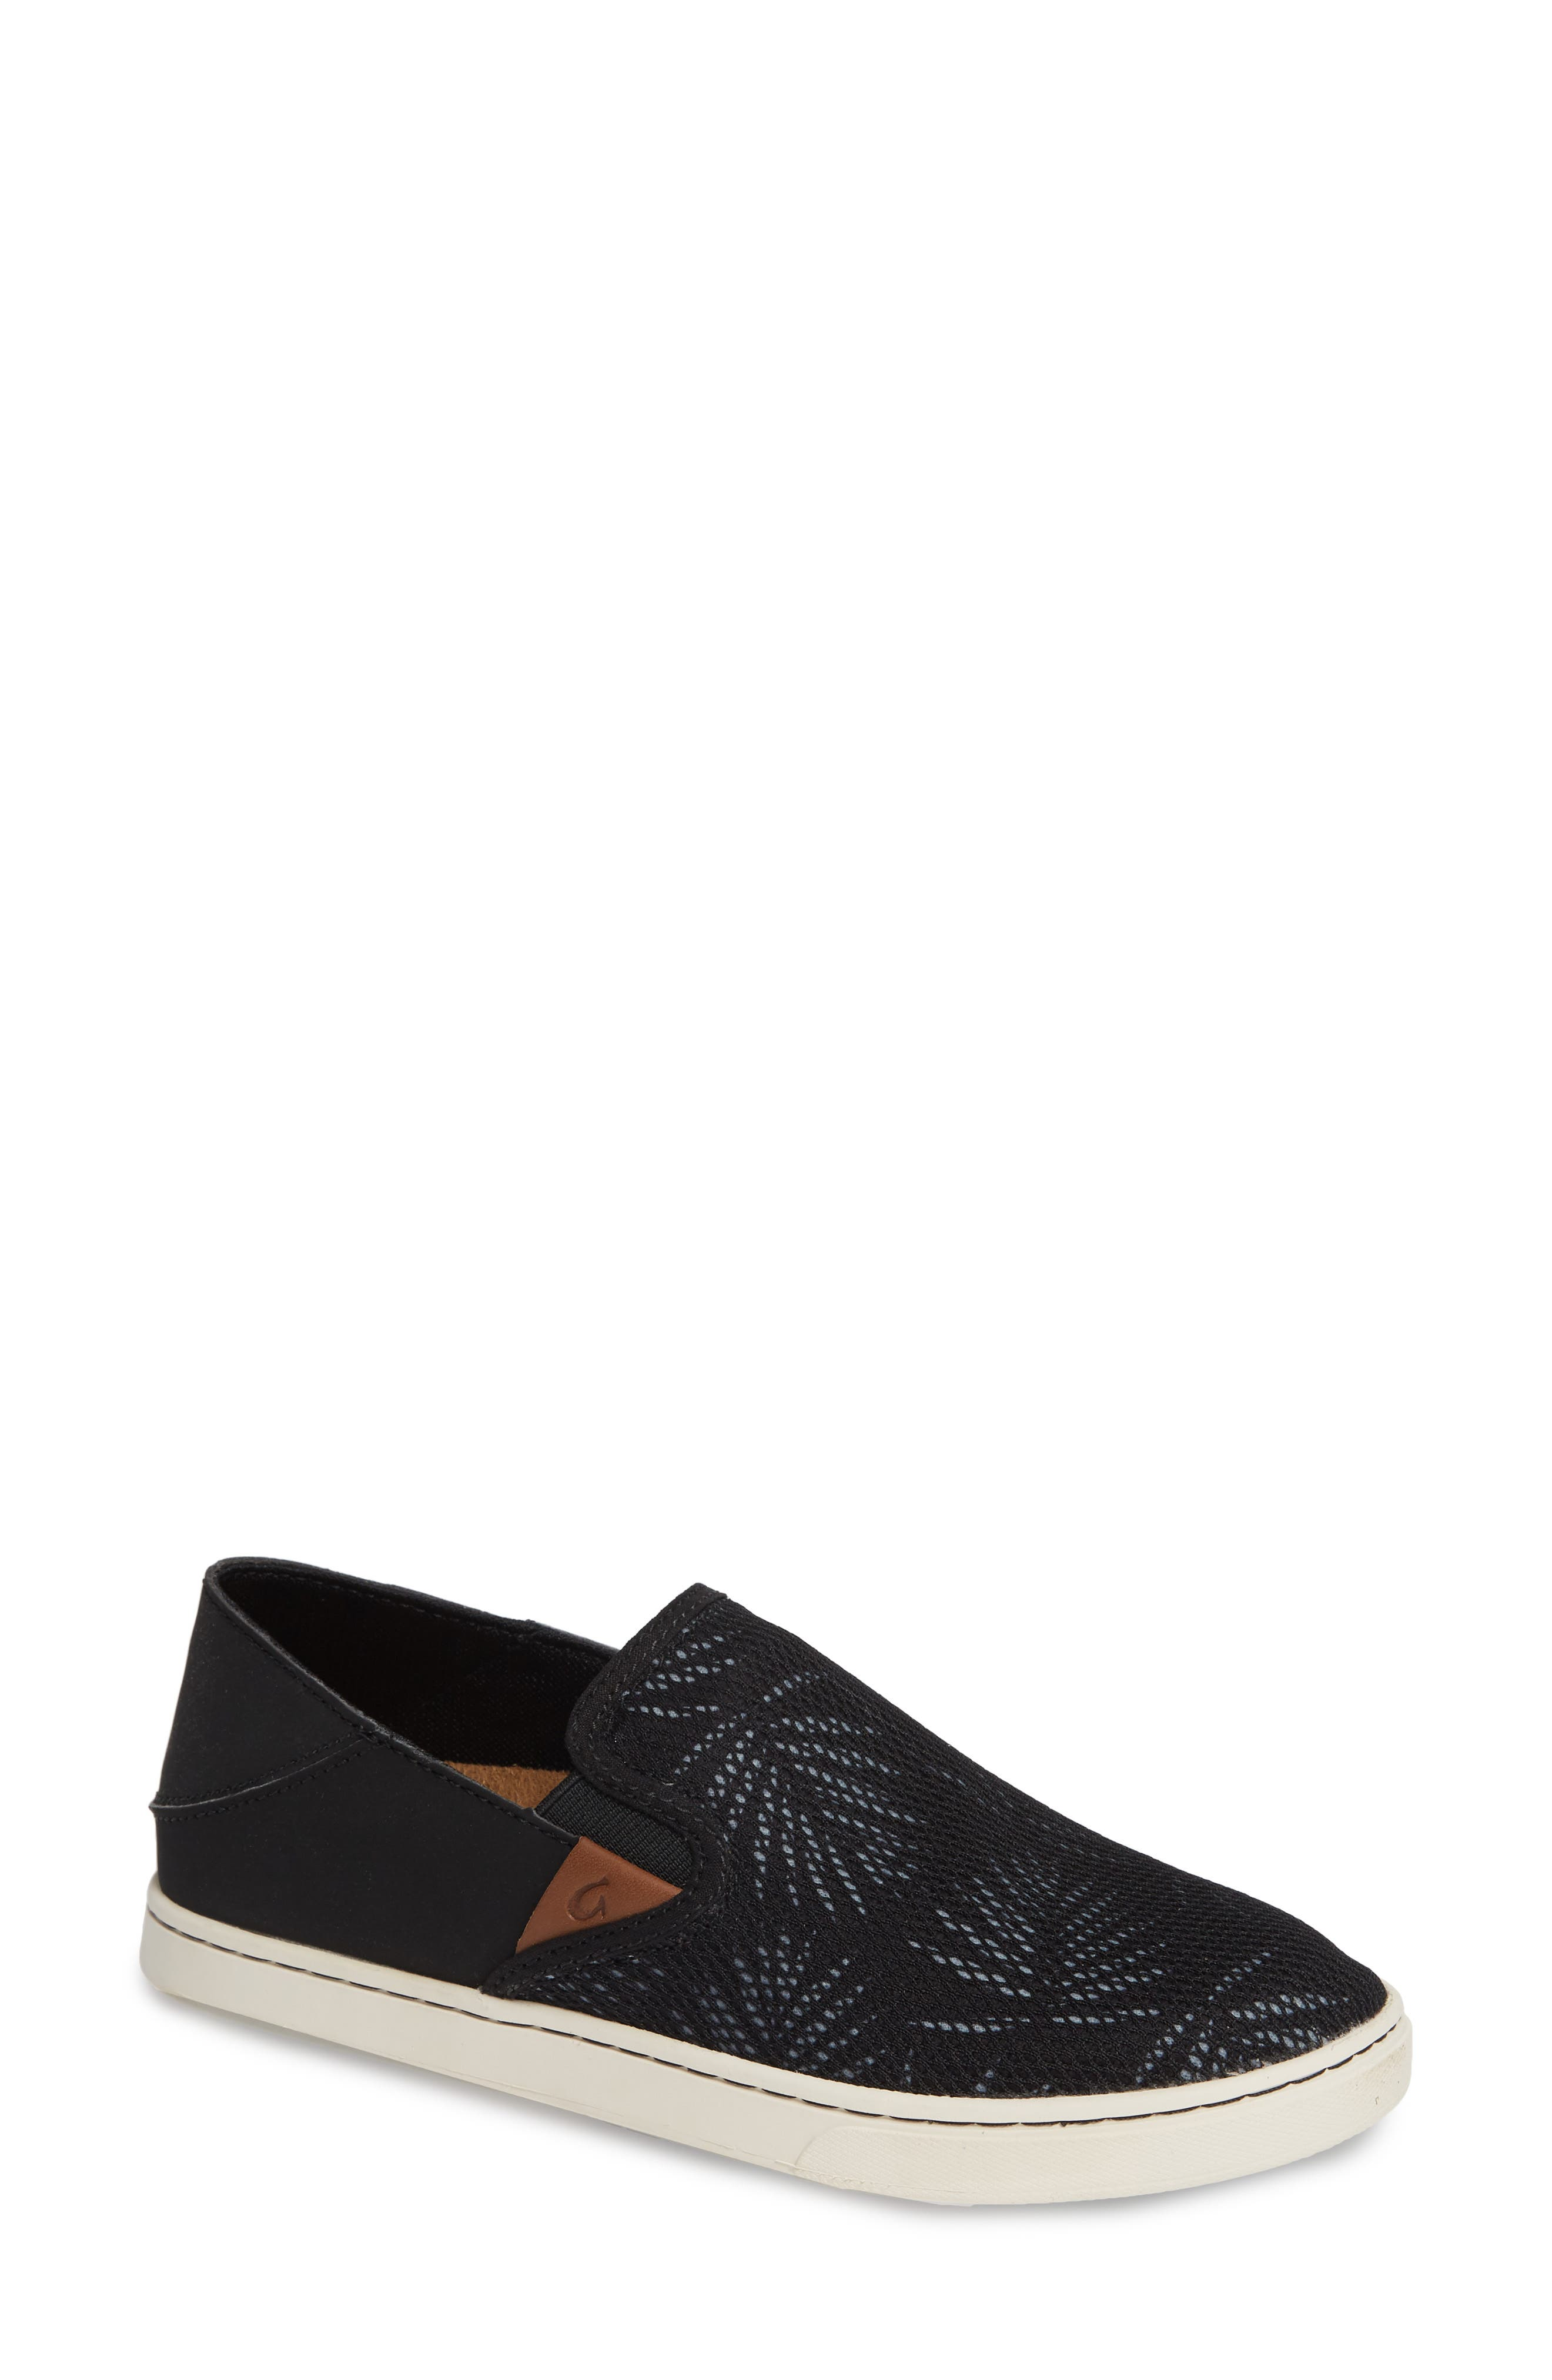 'Pehuea' Slip-On Sneaker,                         Main,                         color, Black/ Palm Fabric